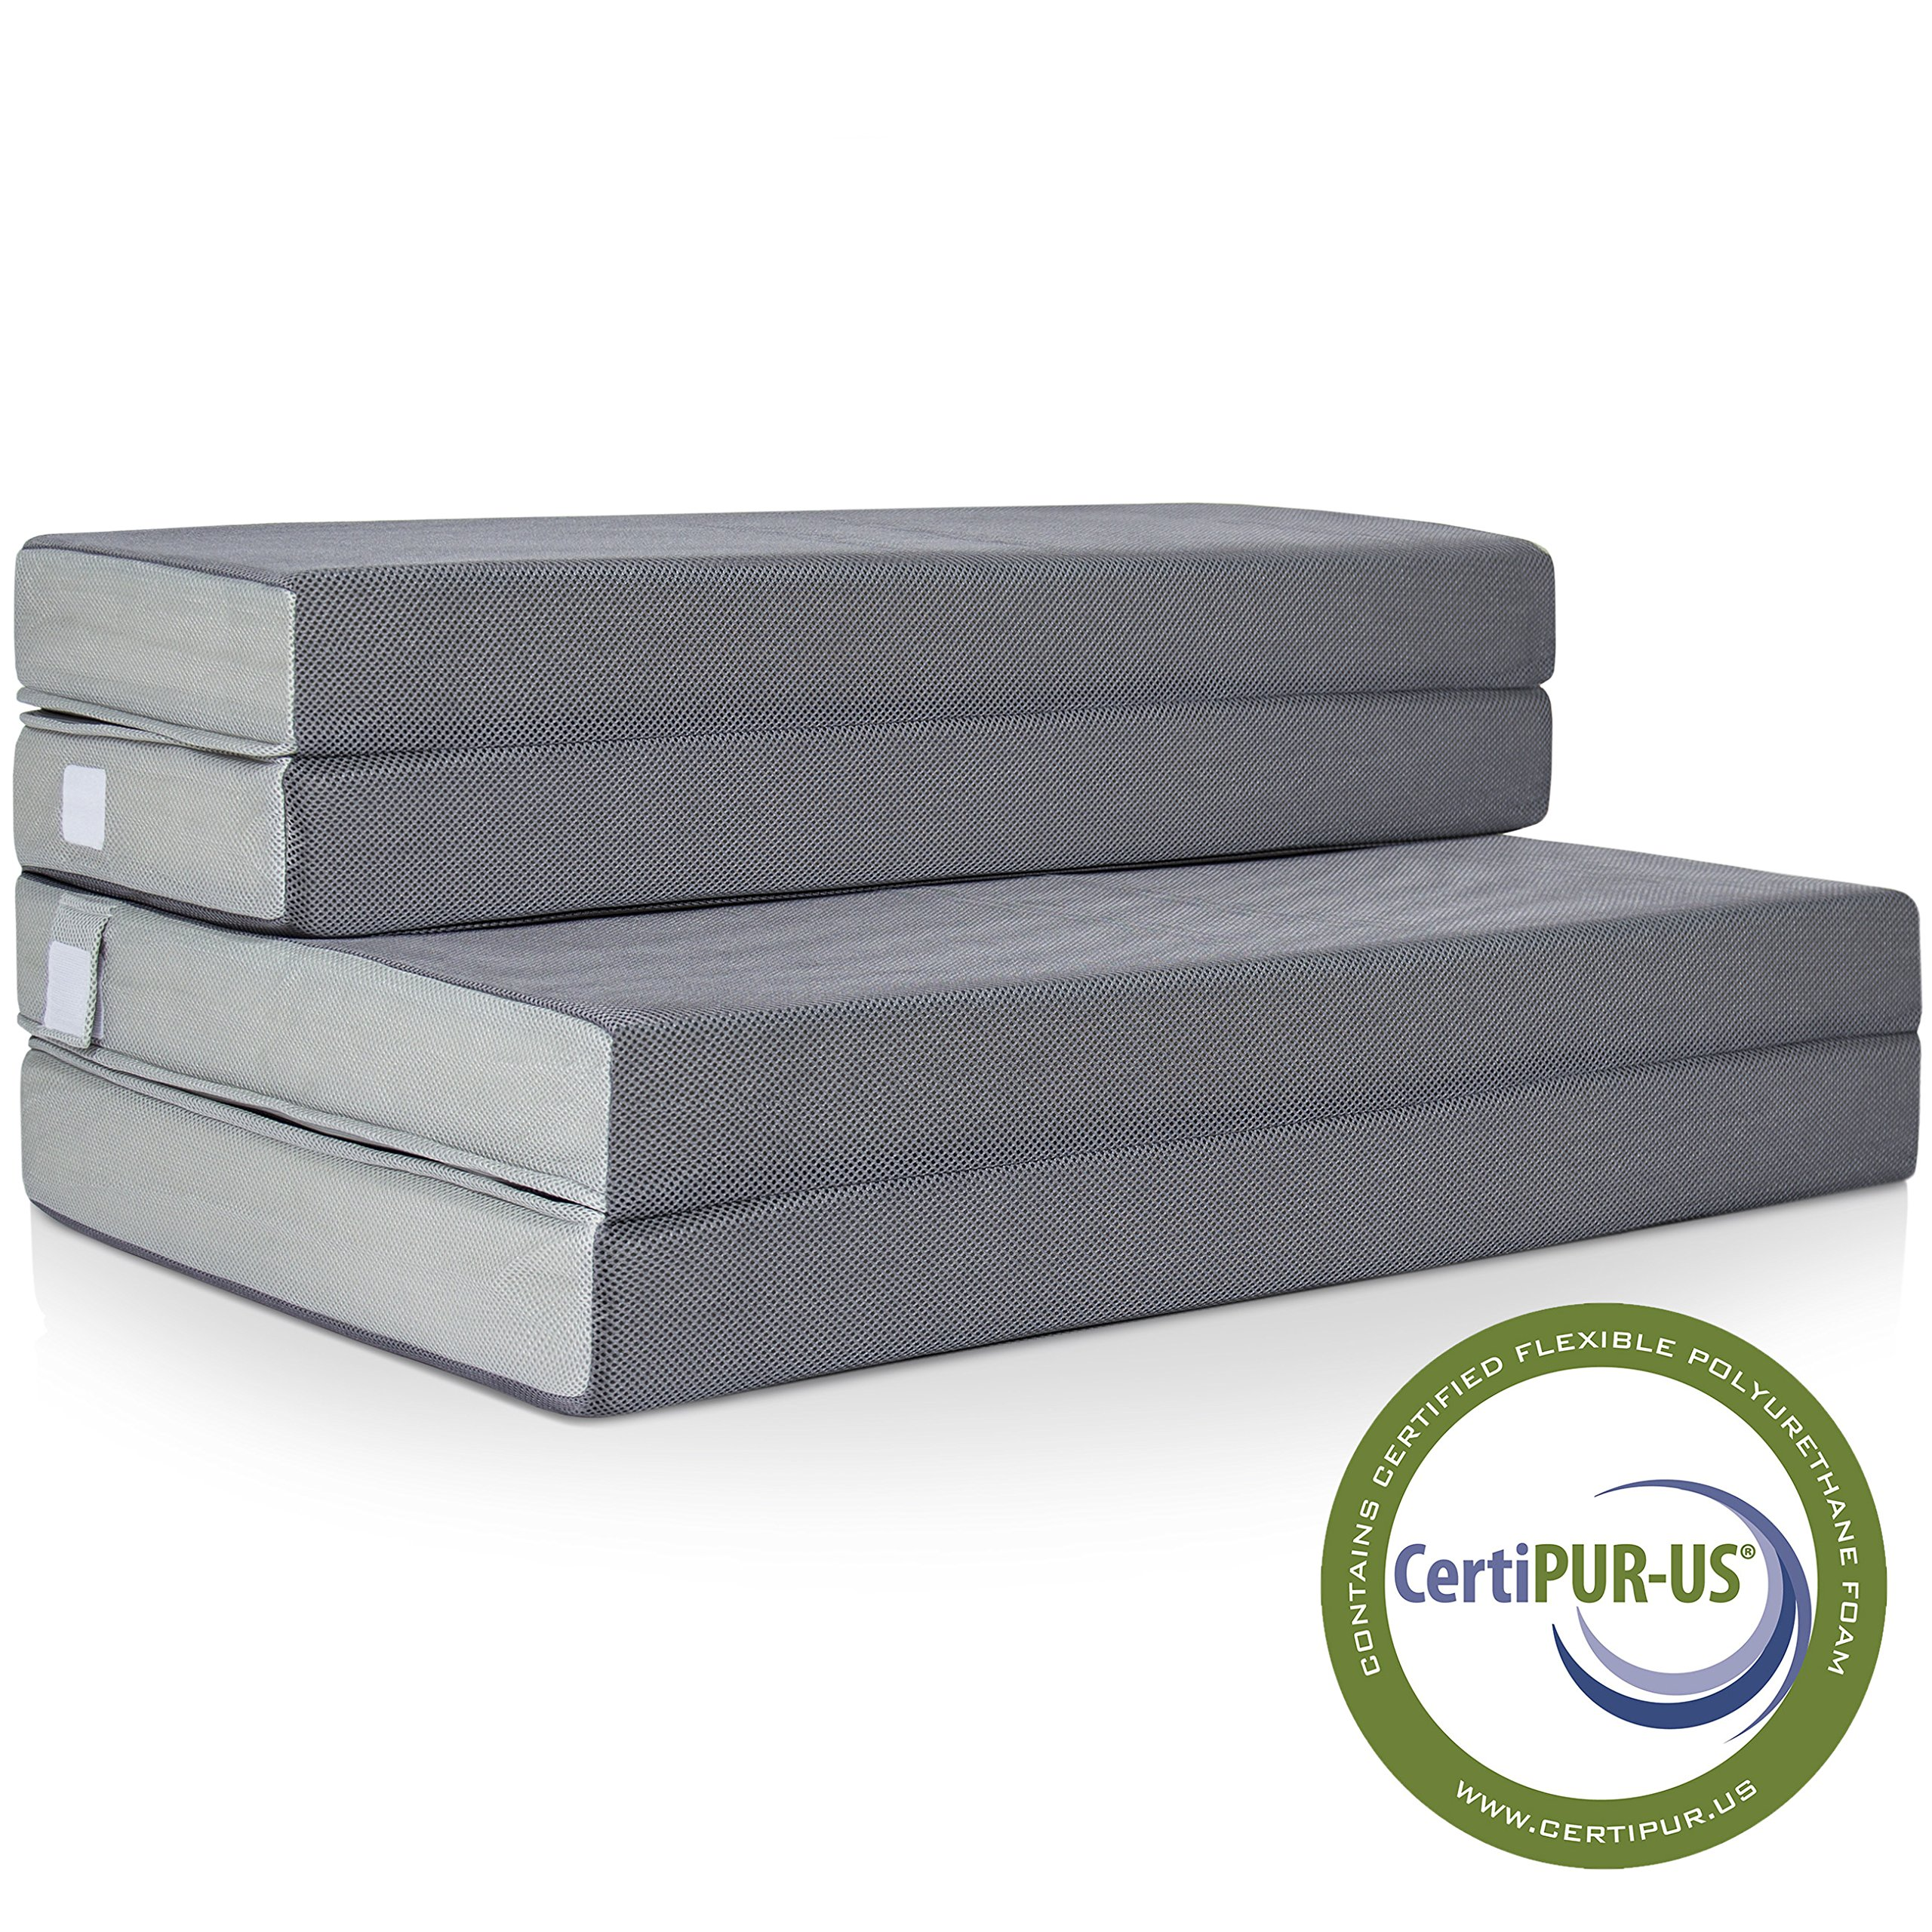 Best Choice Products 4in Thick Folding Portable Twin Mattress Topper w/ High-Density Foam, Washable Cover by Best Choice Products